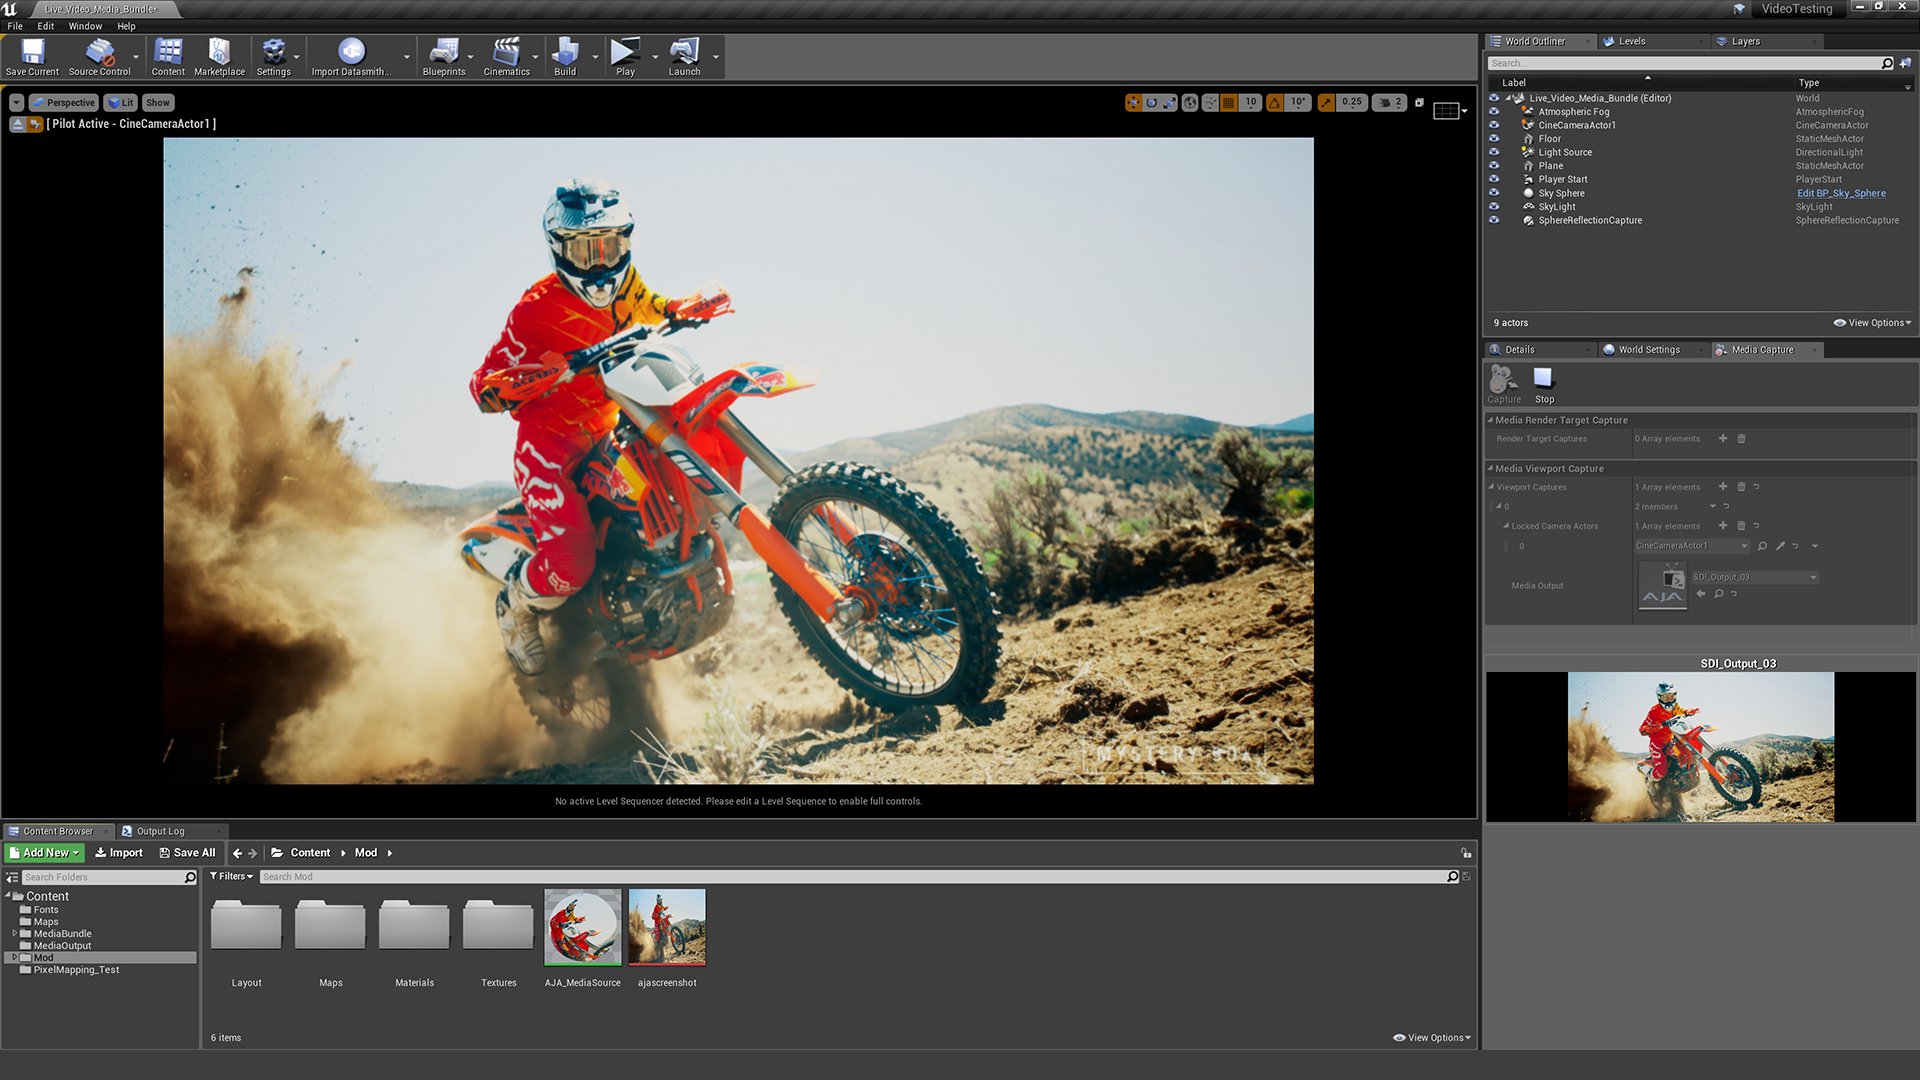 AJA Media Player by Epic Games in Code Plugins - UE4 Marketplace